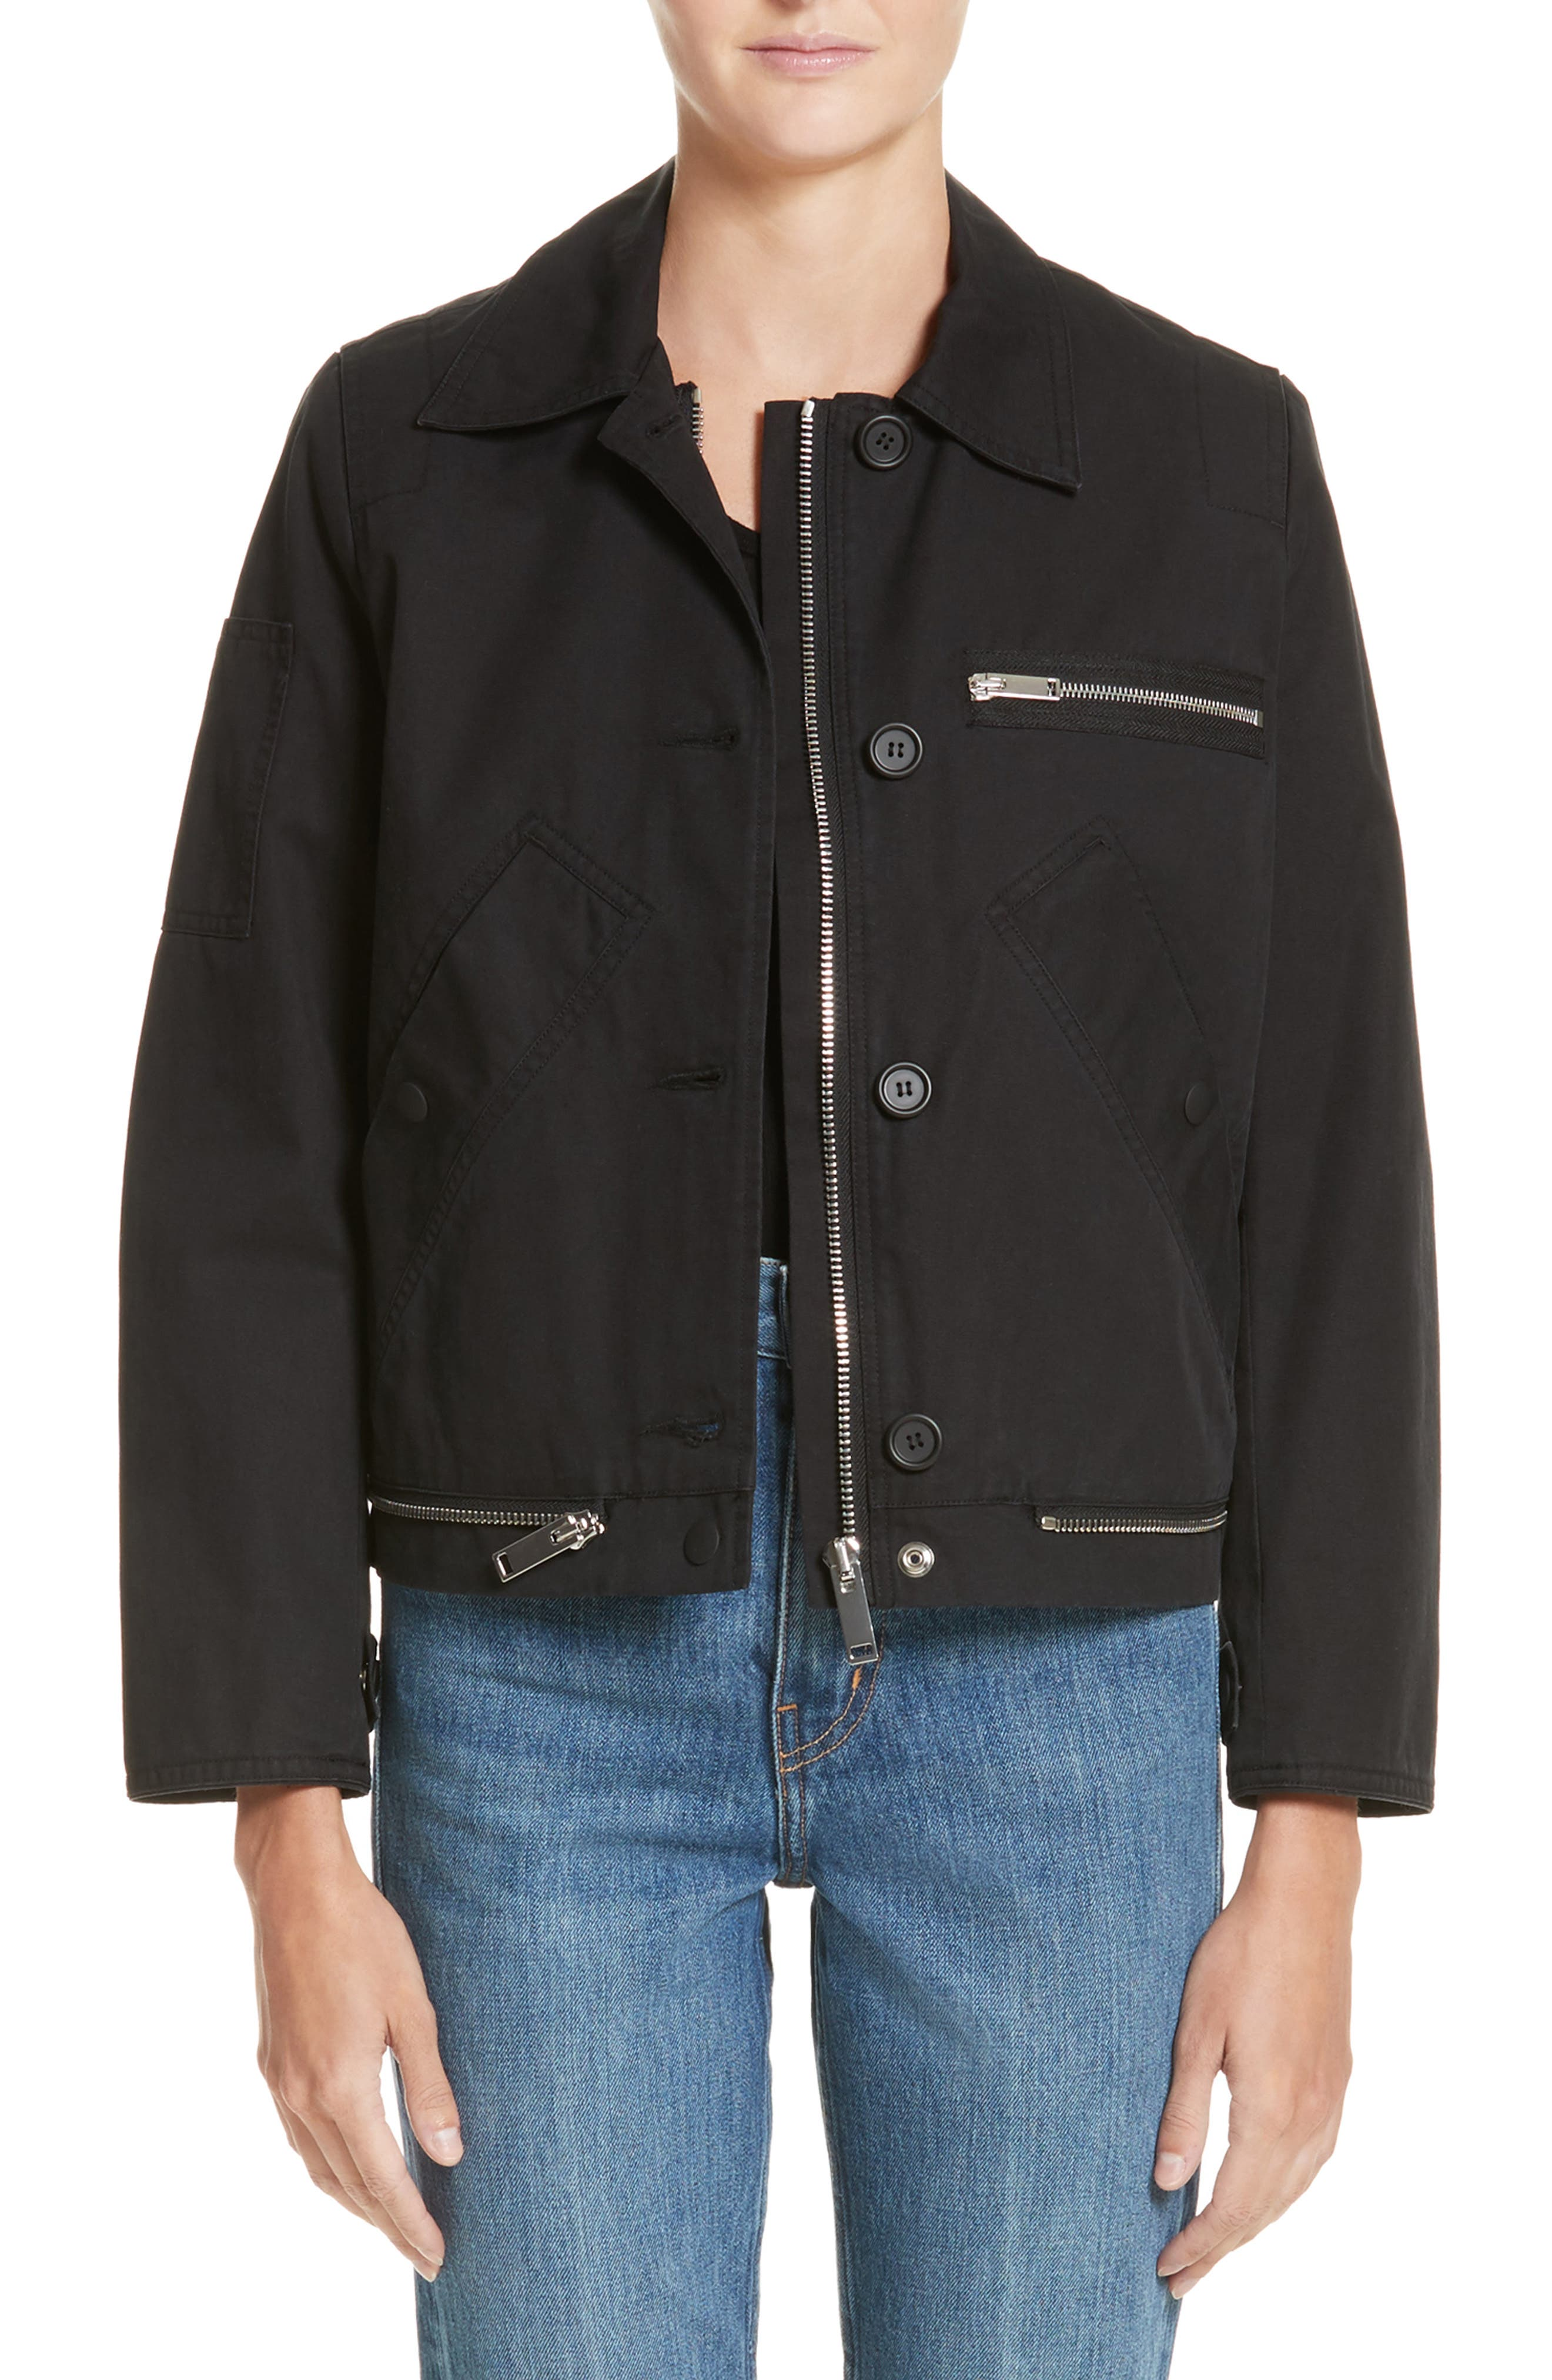 PSWL Washed Cotton Military Jacket,                             Main thumbnail 1, color,                             Black